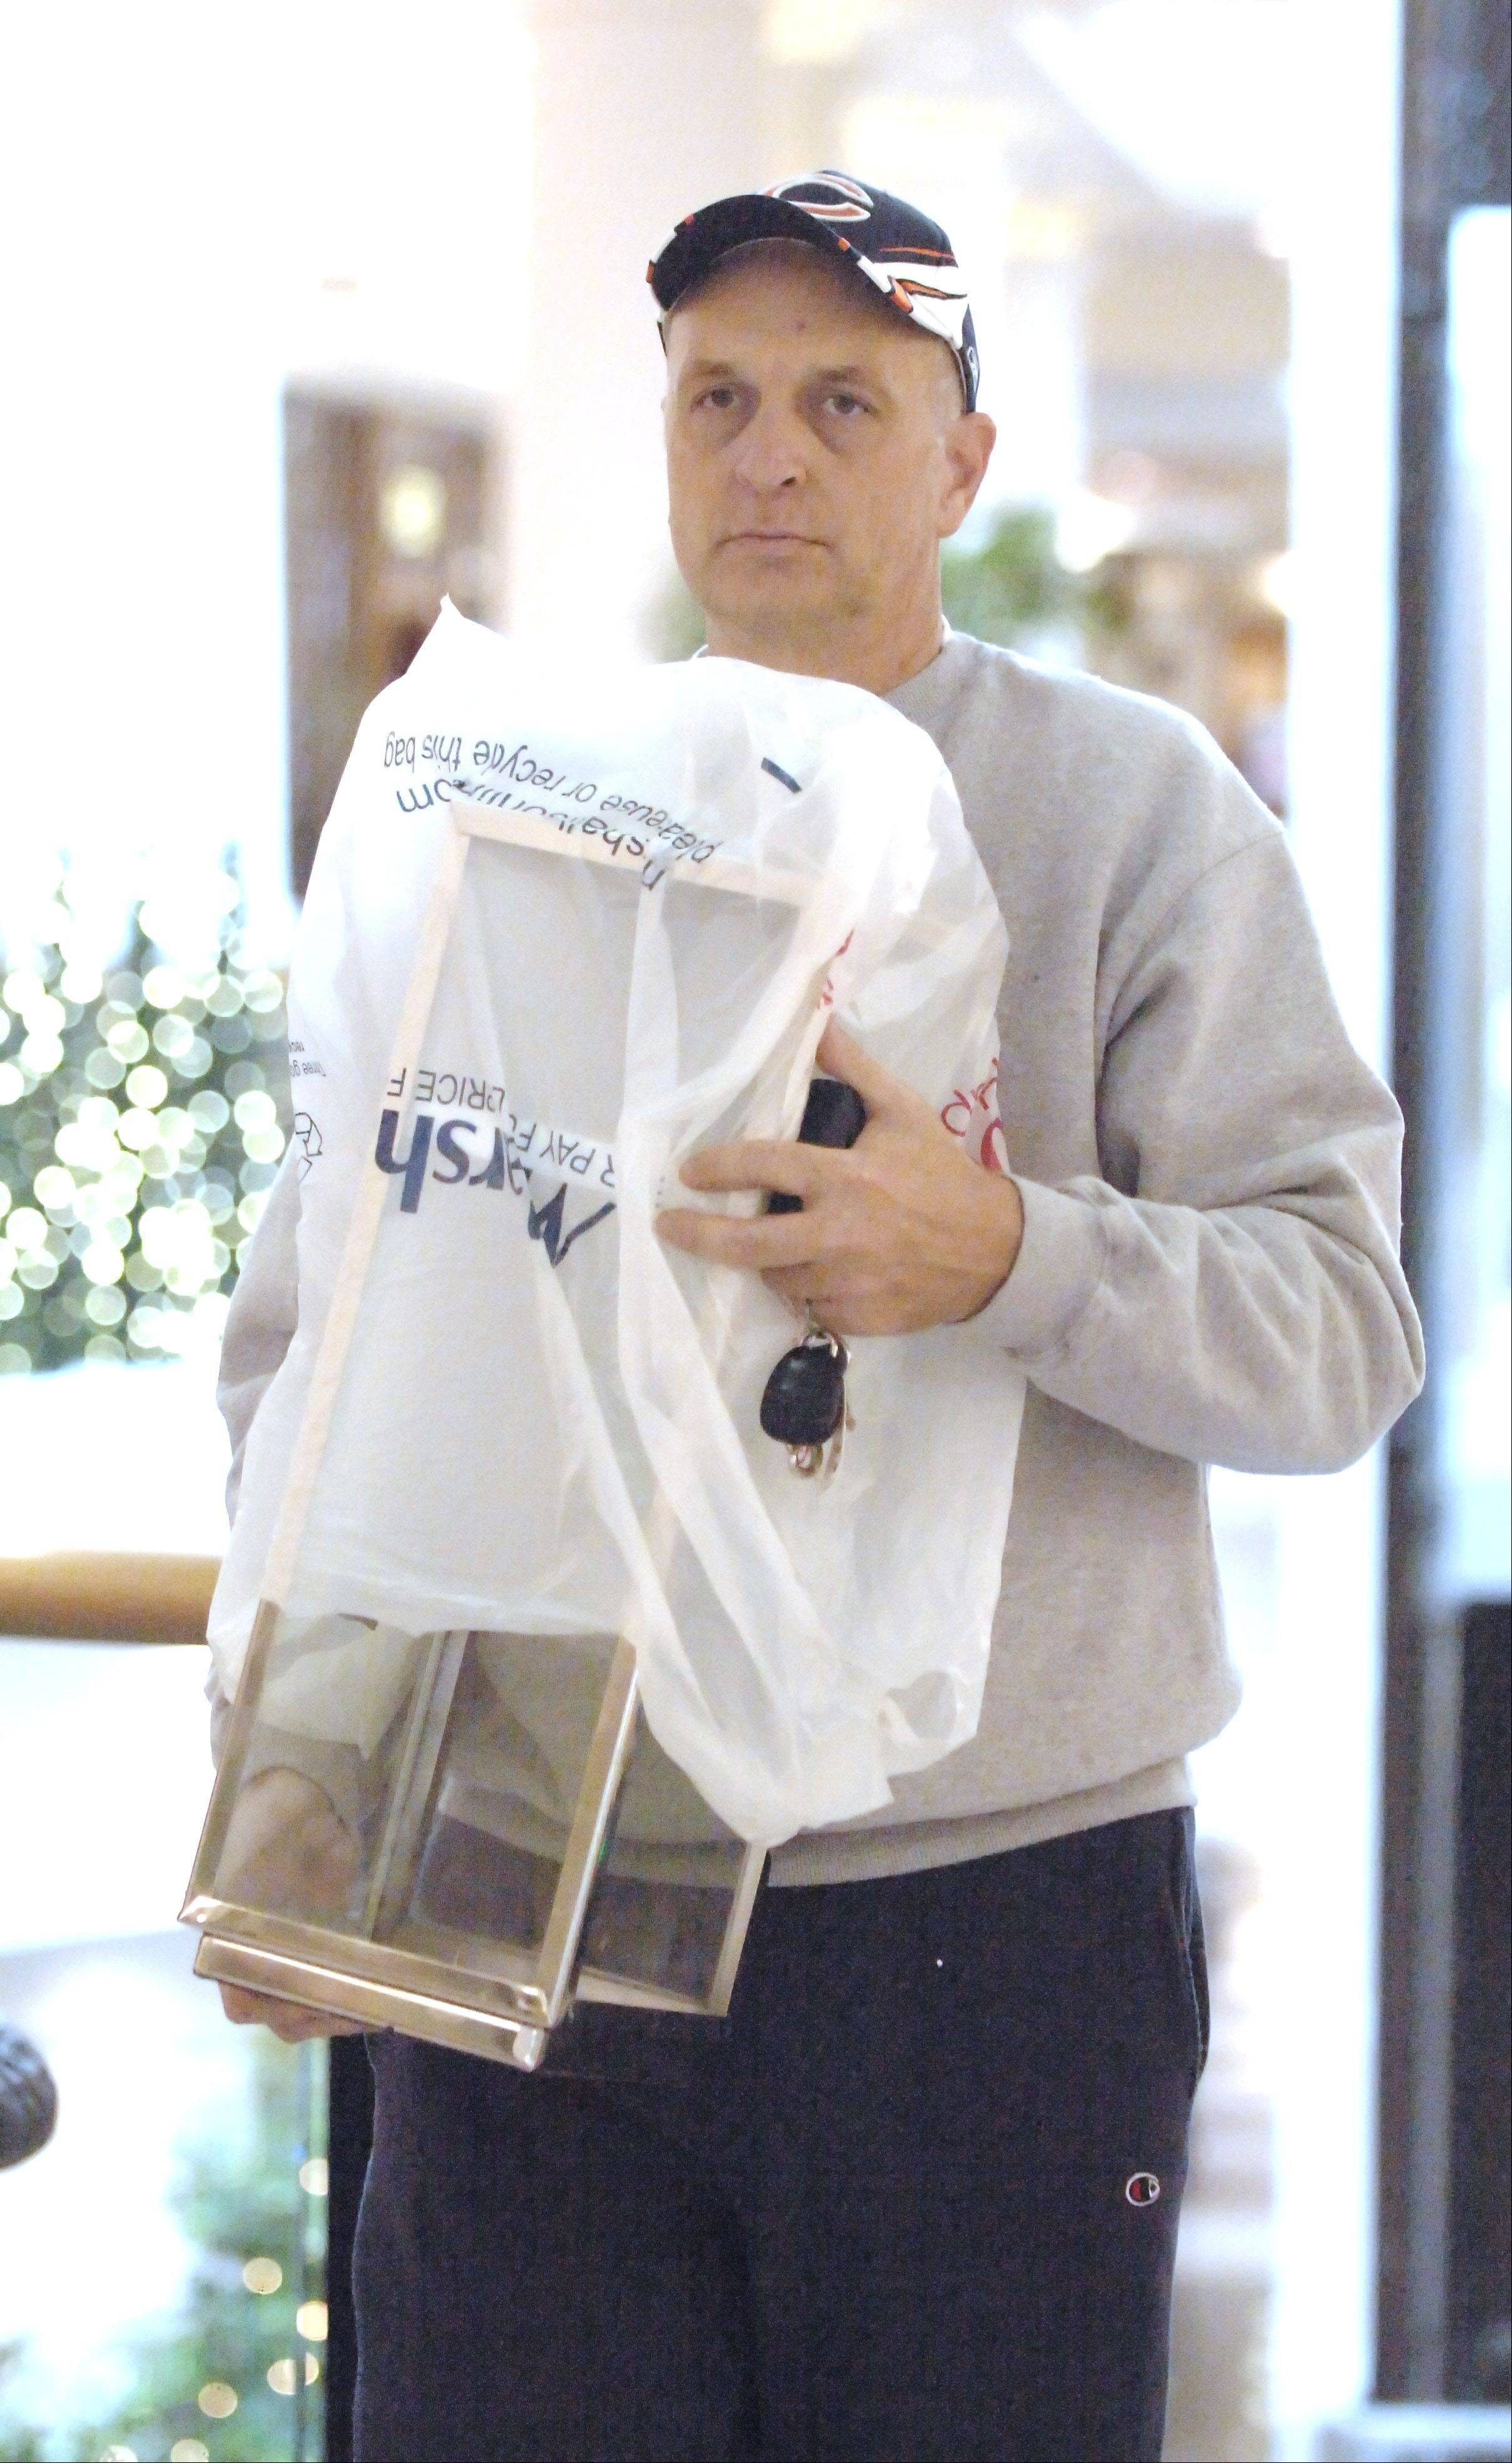 Ed Pawlak of Wheaton was one of the last-minute shoppers who scrambled Monday afternoon to find that special gift or stocking stuffer at Yorktown Mall in Lombard.